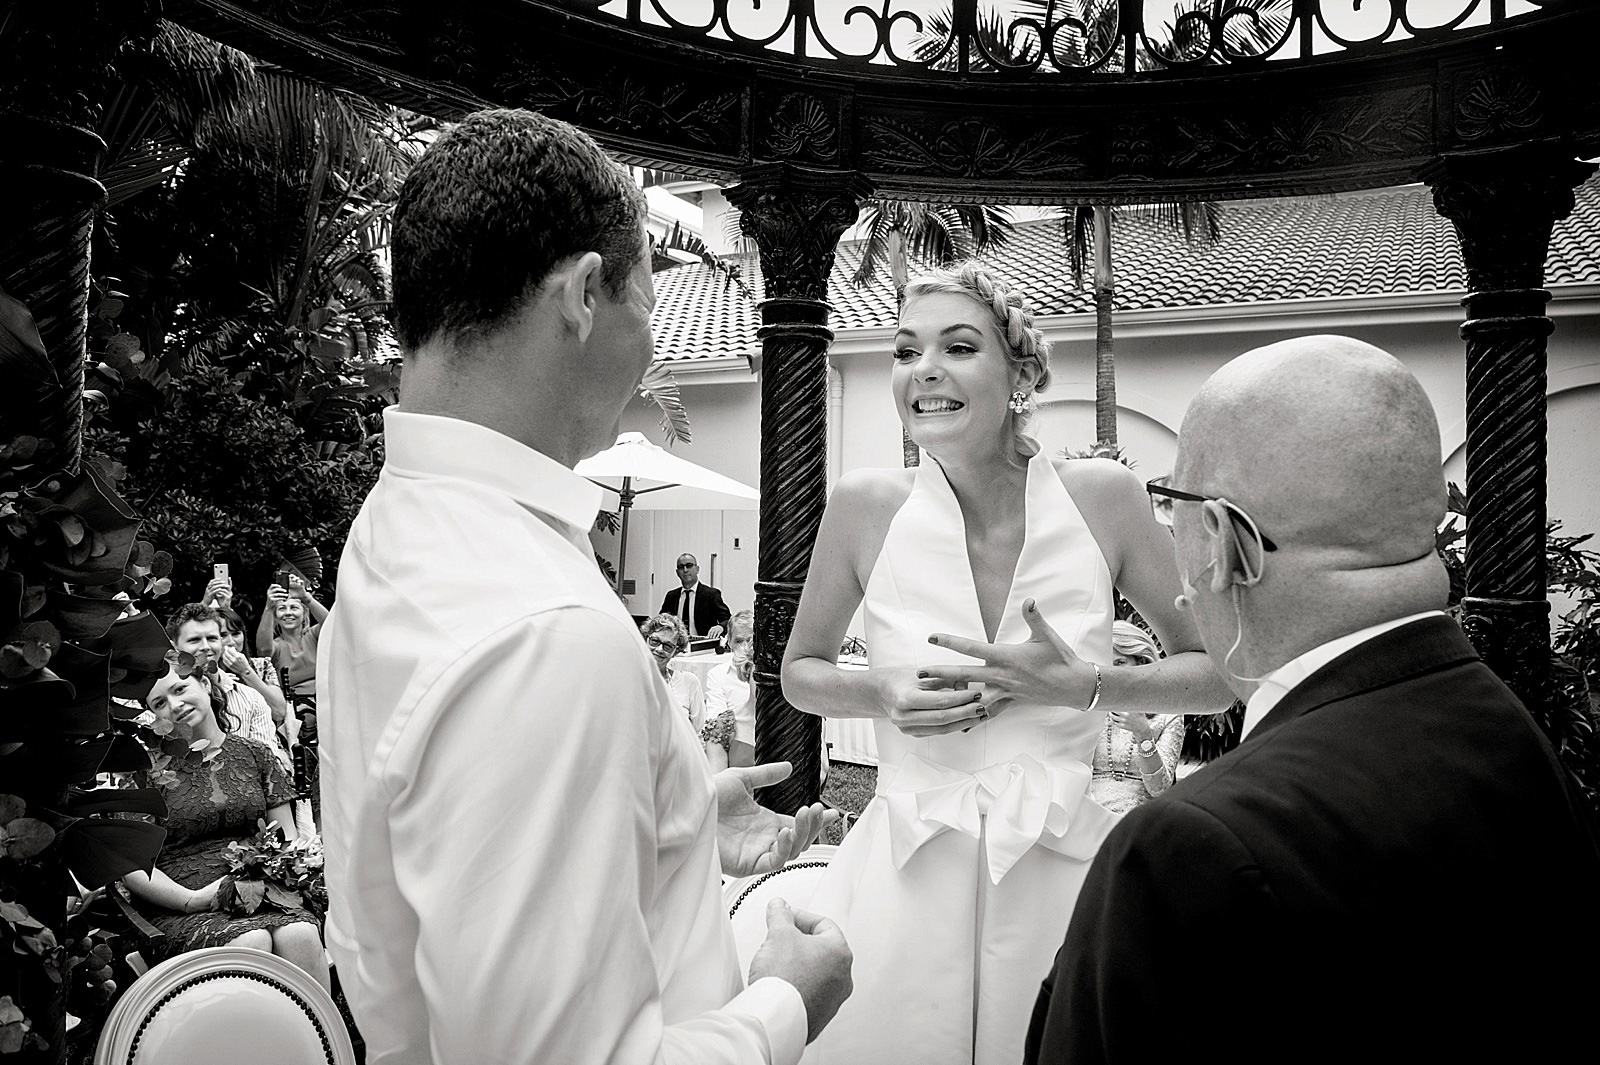 Documentary wedding photography by top South African wedding photographer Jacki Bruniquel